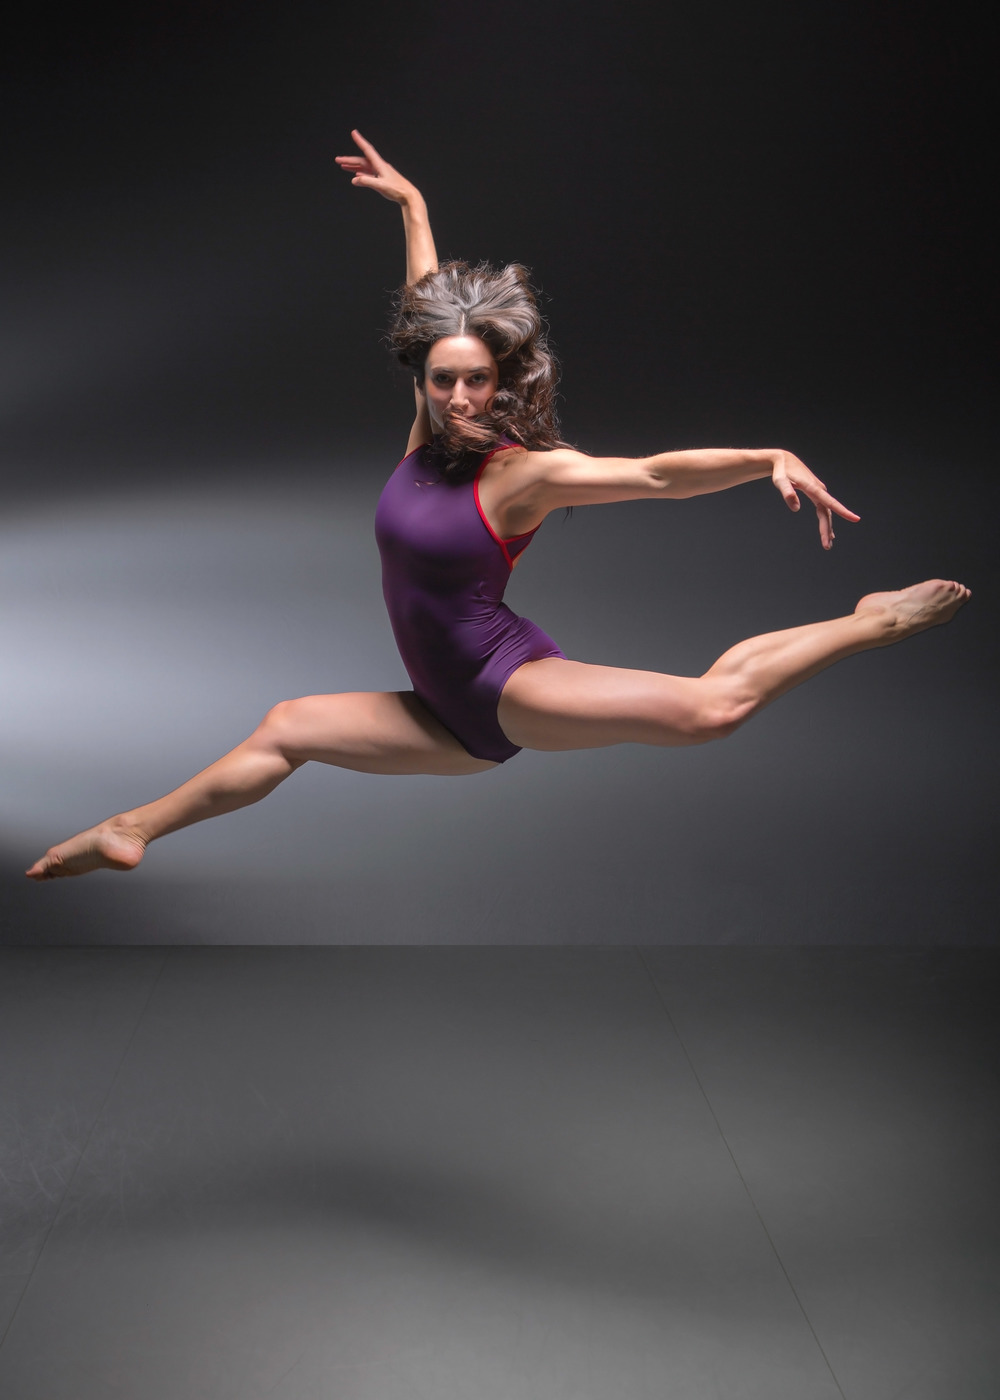 DANIELLE SNYDER grew up near Los Angeles, CA and graduated from the University of Arizona with a BFA in Dance along with a Minor in Communication. Additional training consists of intensives with Cedar Lake Contemporary Ballet, Hubbard Street Dance Company, Gus Giordano Scholarship Program, Complexions Contemporary Ballet, and Stagedoor Manor. Danielle was the 2014 recipient of the Gertrude Shurr Award for Passionate Artistry for the numerous works she performed on the University of Arizona stage, and she has also performed at the Carnival Choreographer's Ball in Hollywood, the McCallum Theater's Choreography Festival in Palm Springs, the American College Dance Festival, as well as at the Capezio ACE Awards in NYC. These performances include pieces choreographed by Larry Keigwin, Anne Reinking, Gary Chryst, Sherry Zunker, Sam Watson, Doug Nielsen, Alex Little, Spencer Gavin Herring, and Andrea D. Shelley. As a company member with METdance Company, her repertoire has expanded with works by Lauren Edson, Kate Skarpetowska, Joe Celej, john r. stronks,Kiki Lucas, Marlana Doyle, Sydney Skybetter, and Jessica Hendricks. This is her 2nd season with METdance.